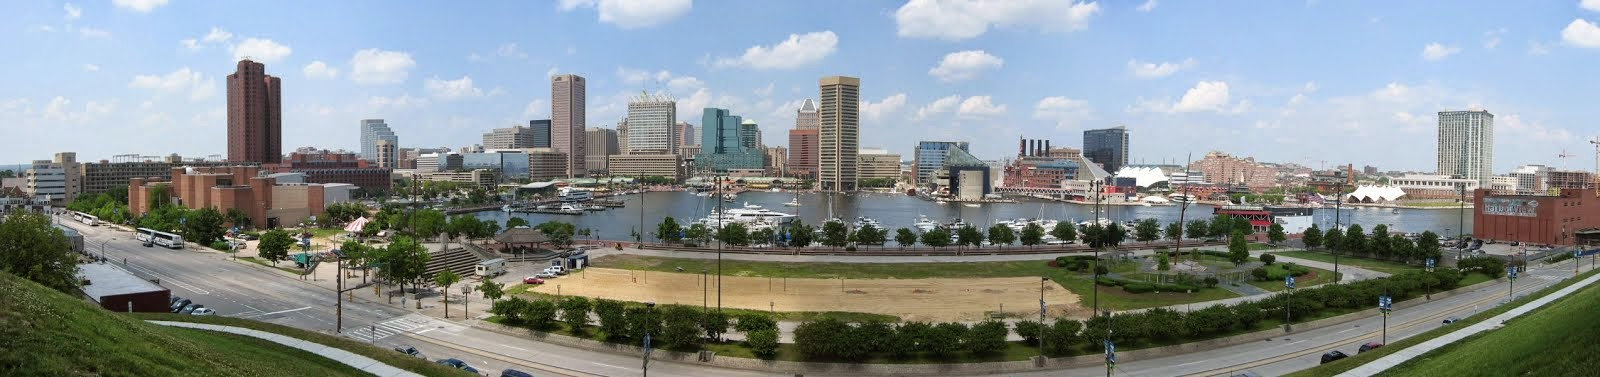 Baltimore Real Estate Investing